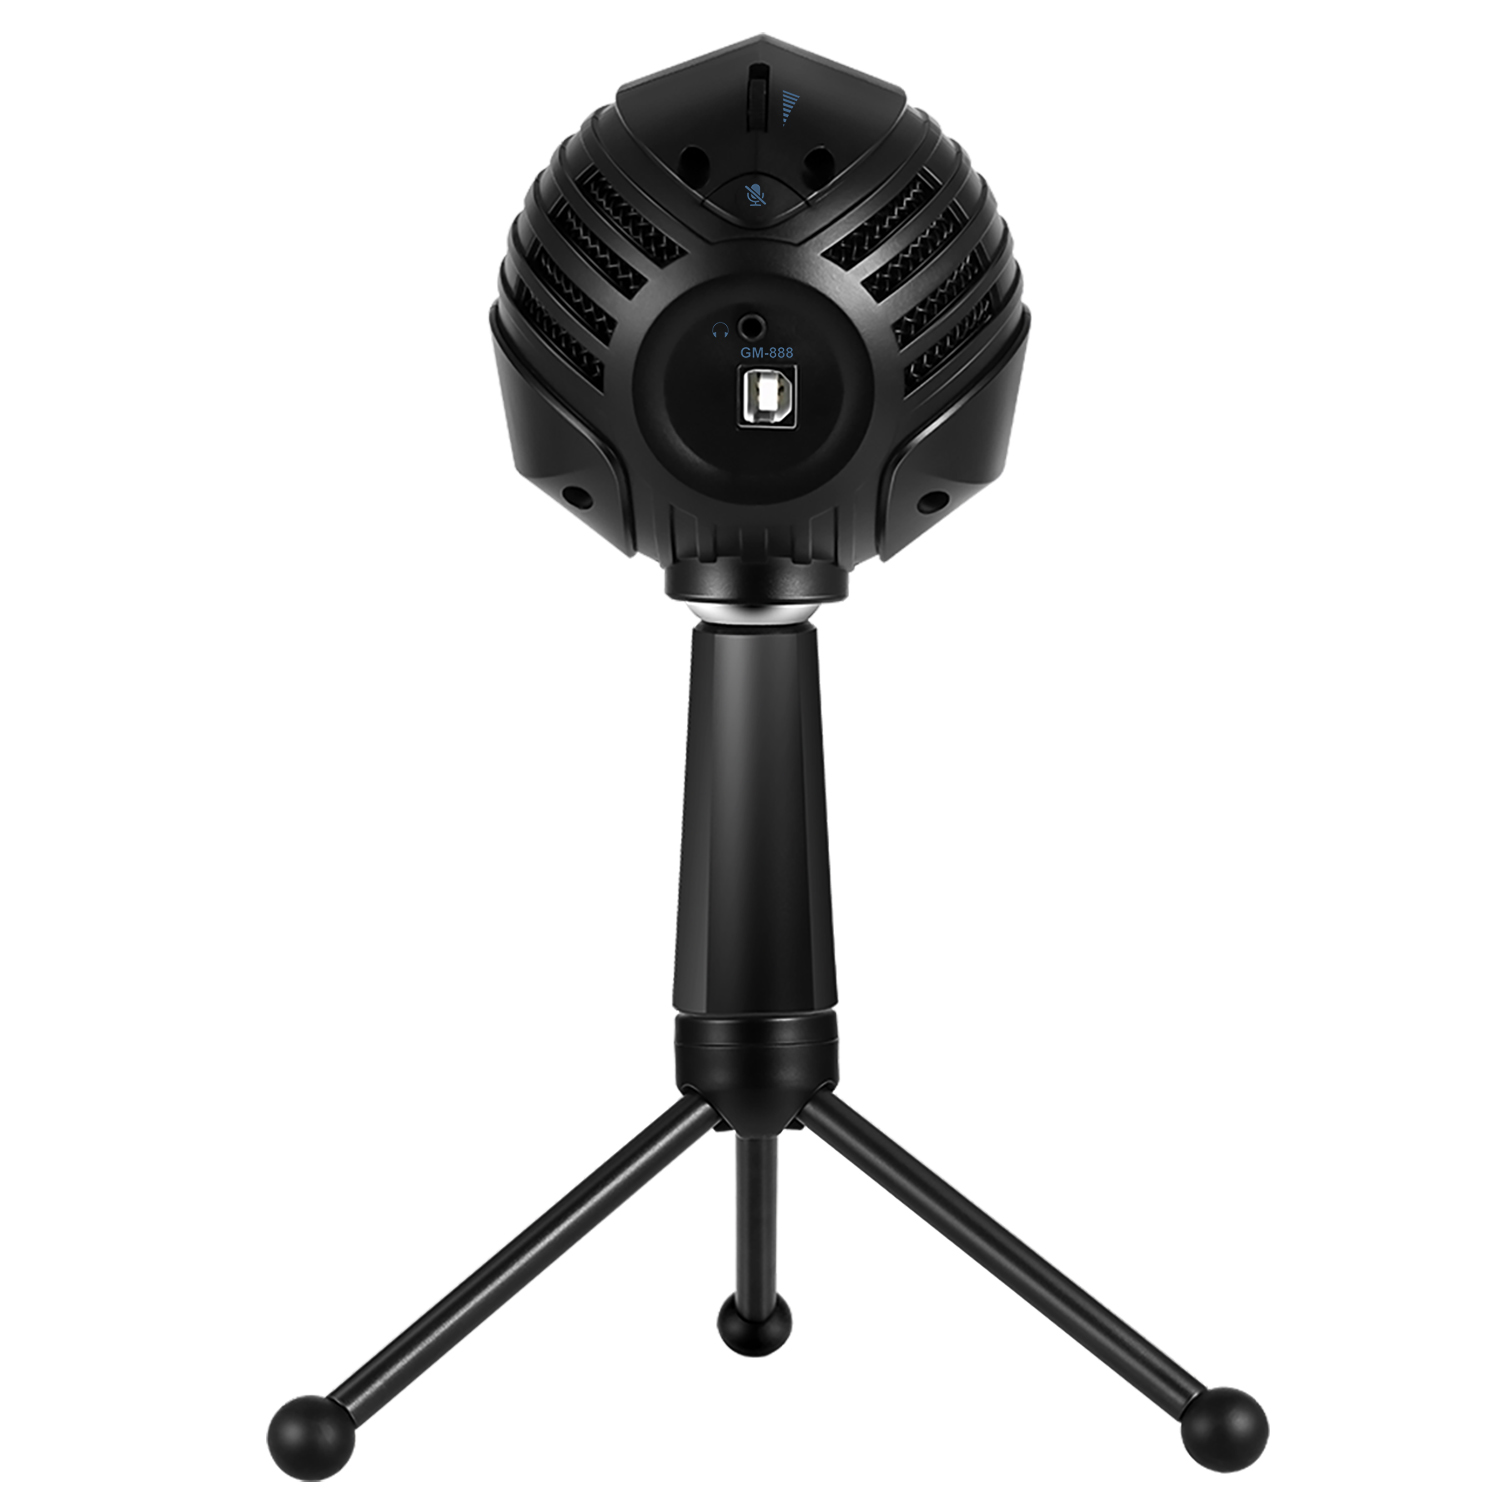 ammoon gm 888 usb condenser microphone ball shaped mic with desktop mini metal tripod stand in. Black Bedroom Furniture Sets. Home Design Ideas